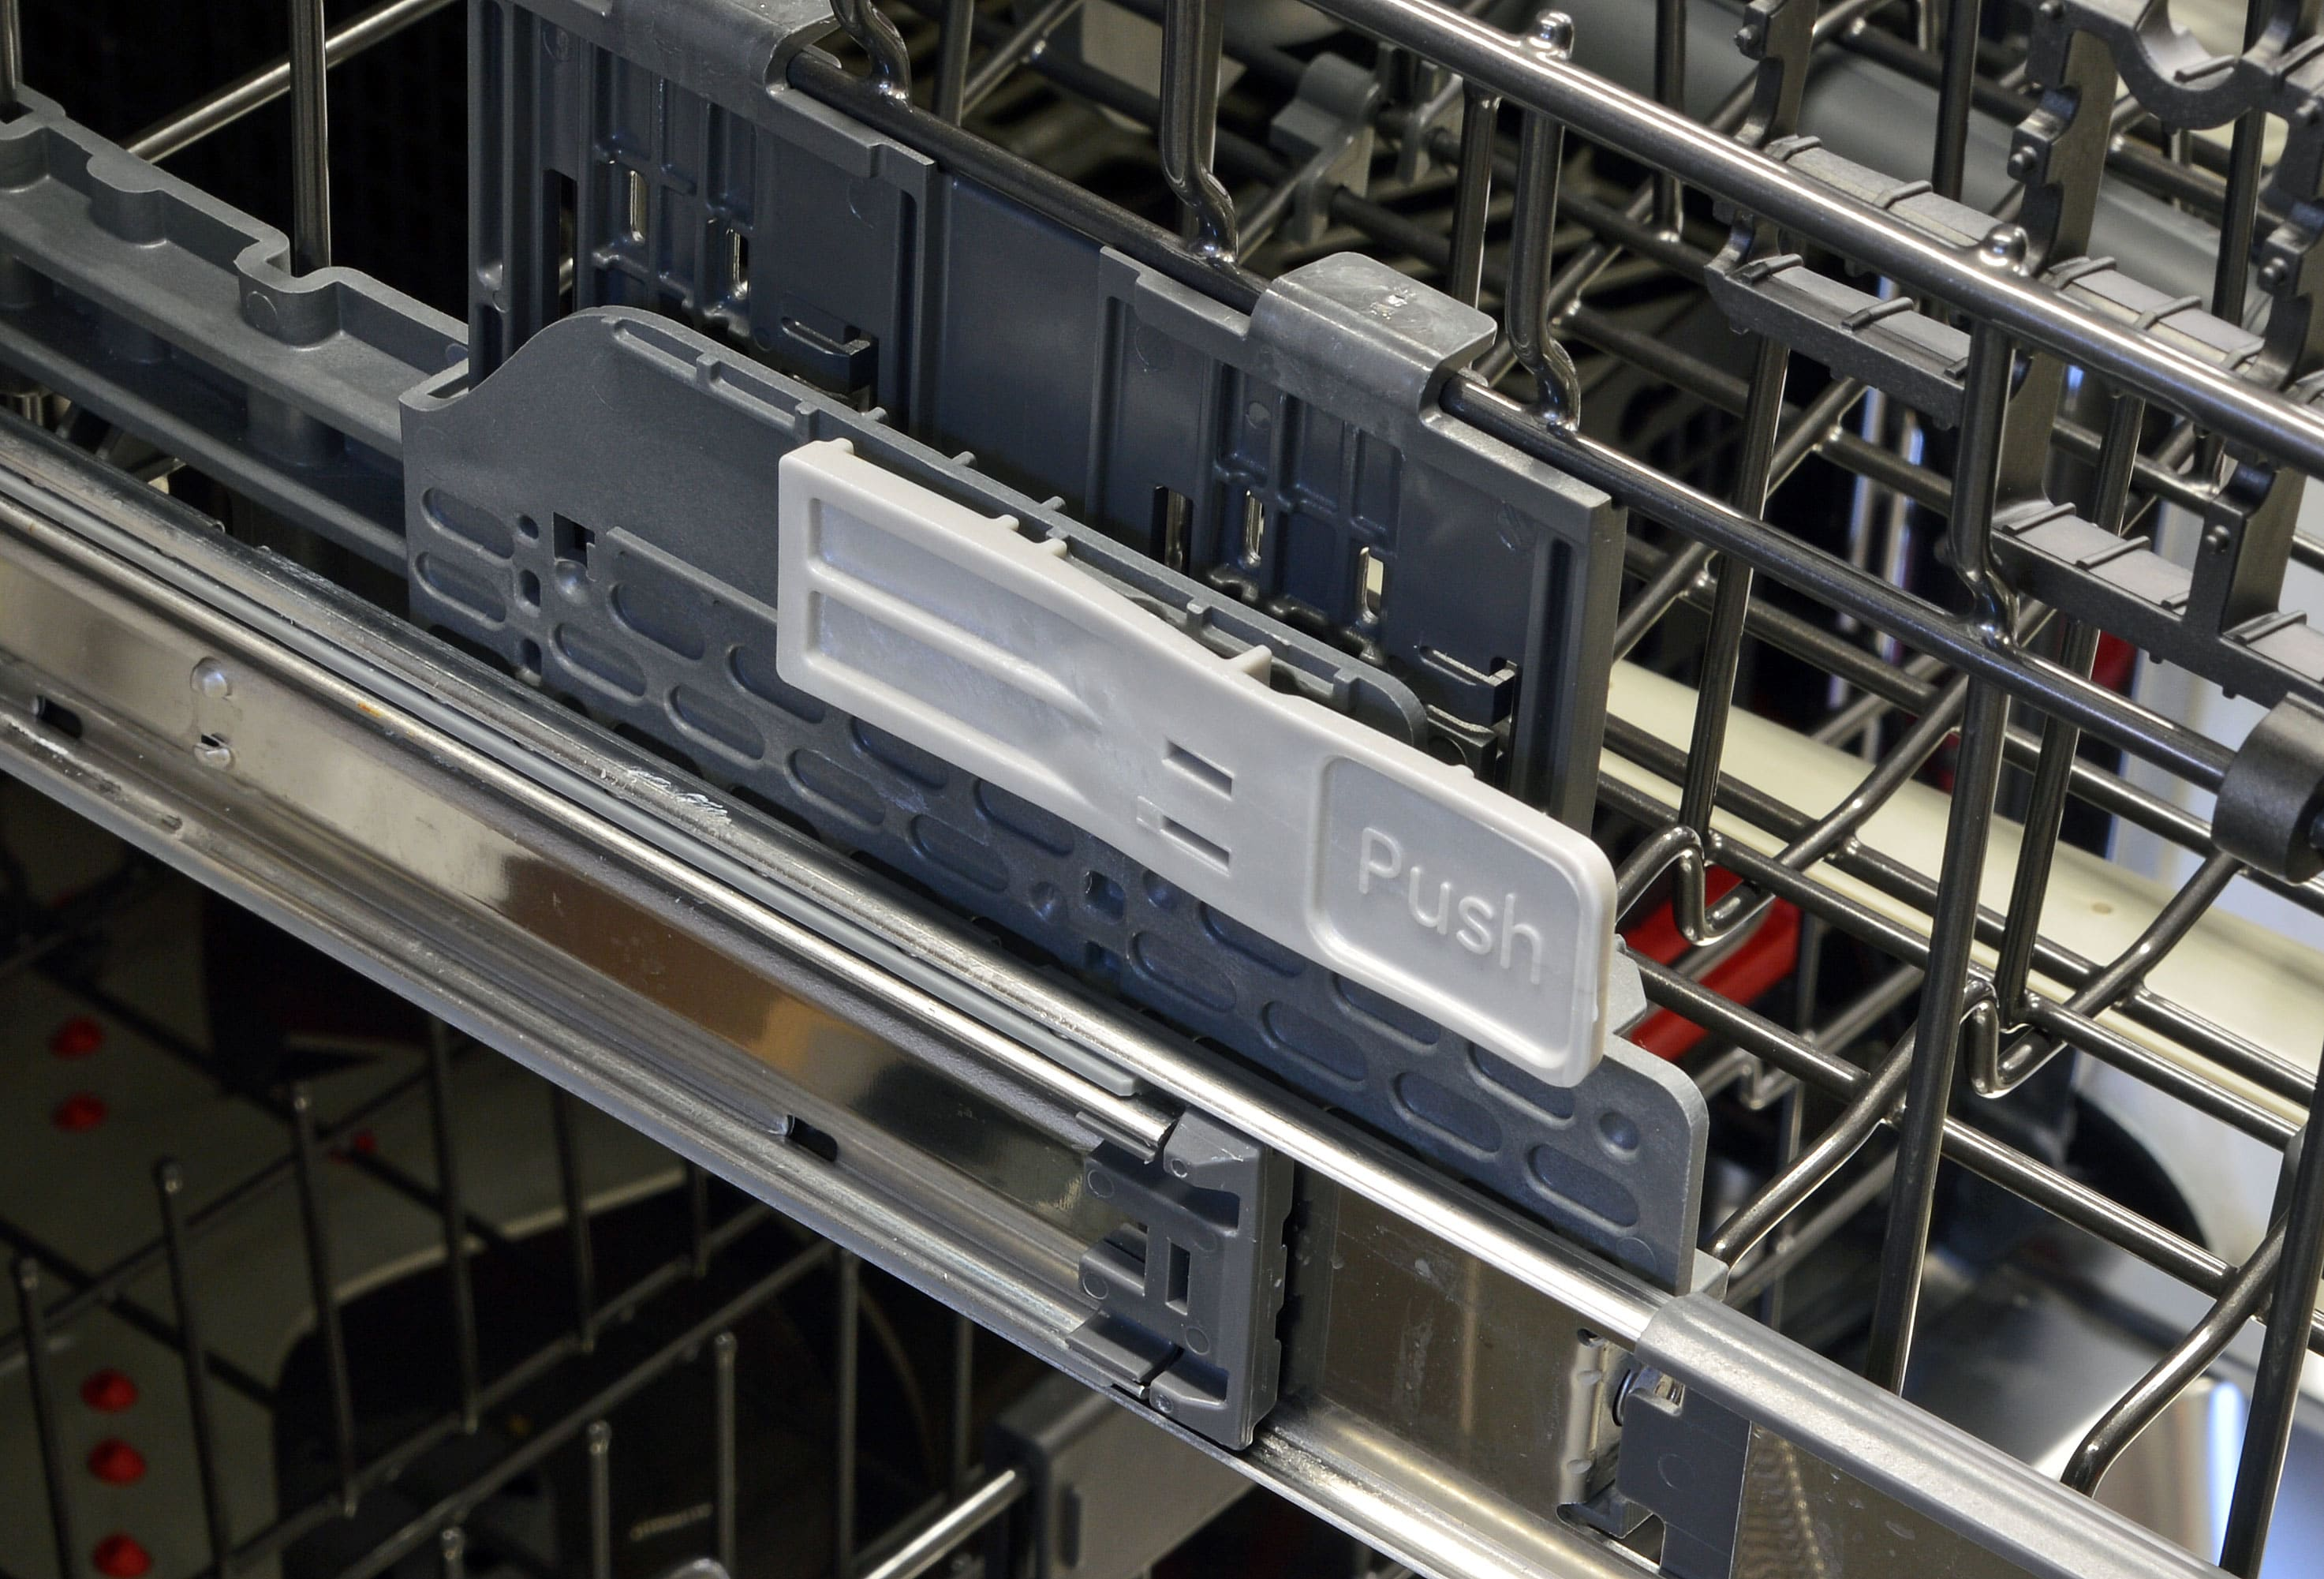 The upper rack's height can be adjusted using the handles on the side.